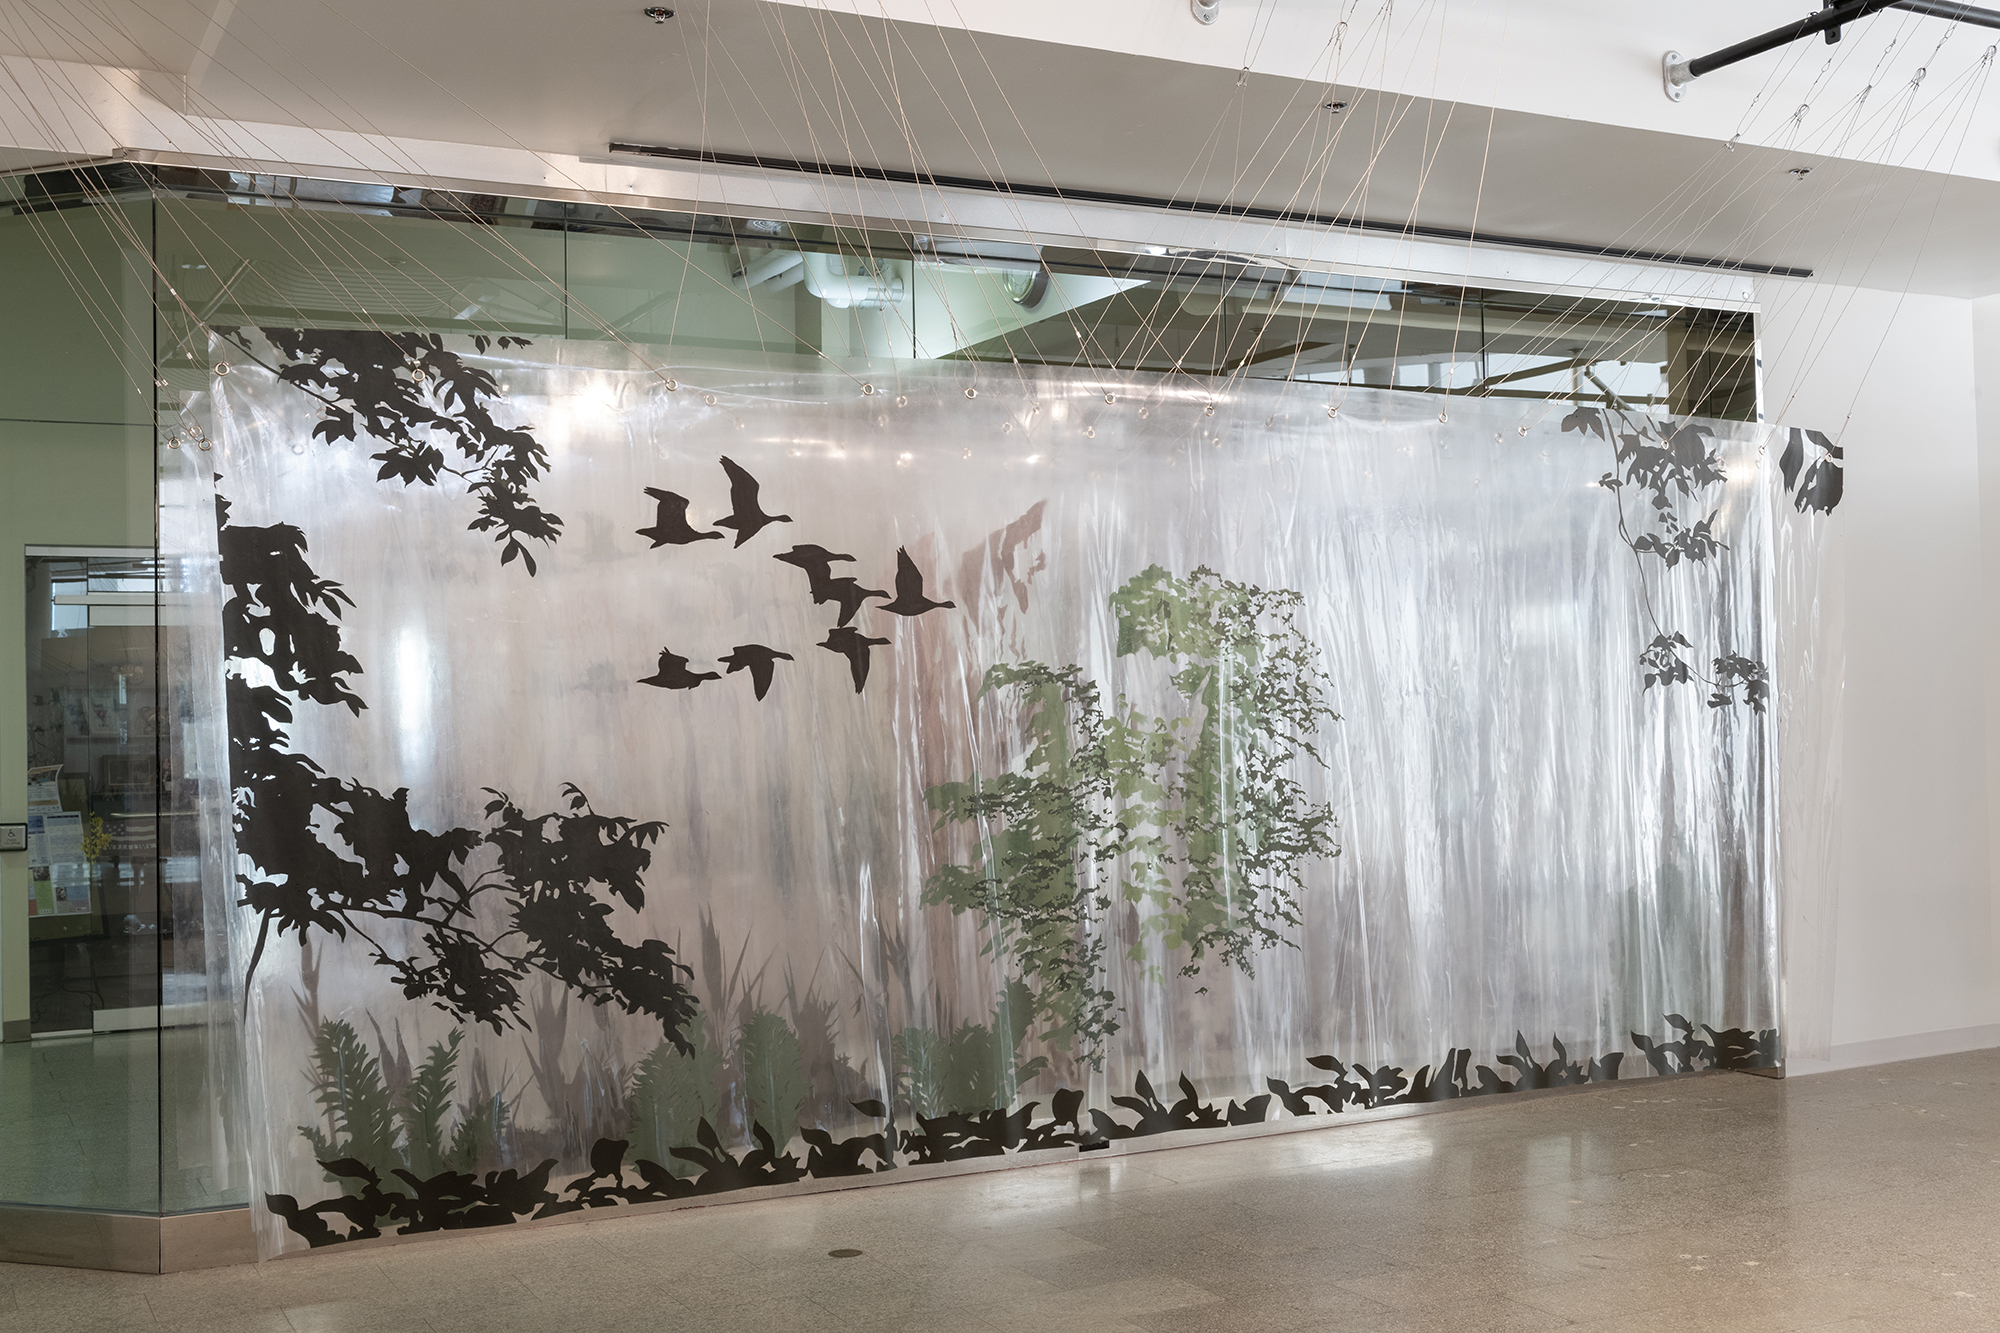 An installation piece that shows silhouettes of birds and trees.